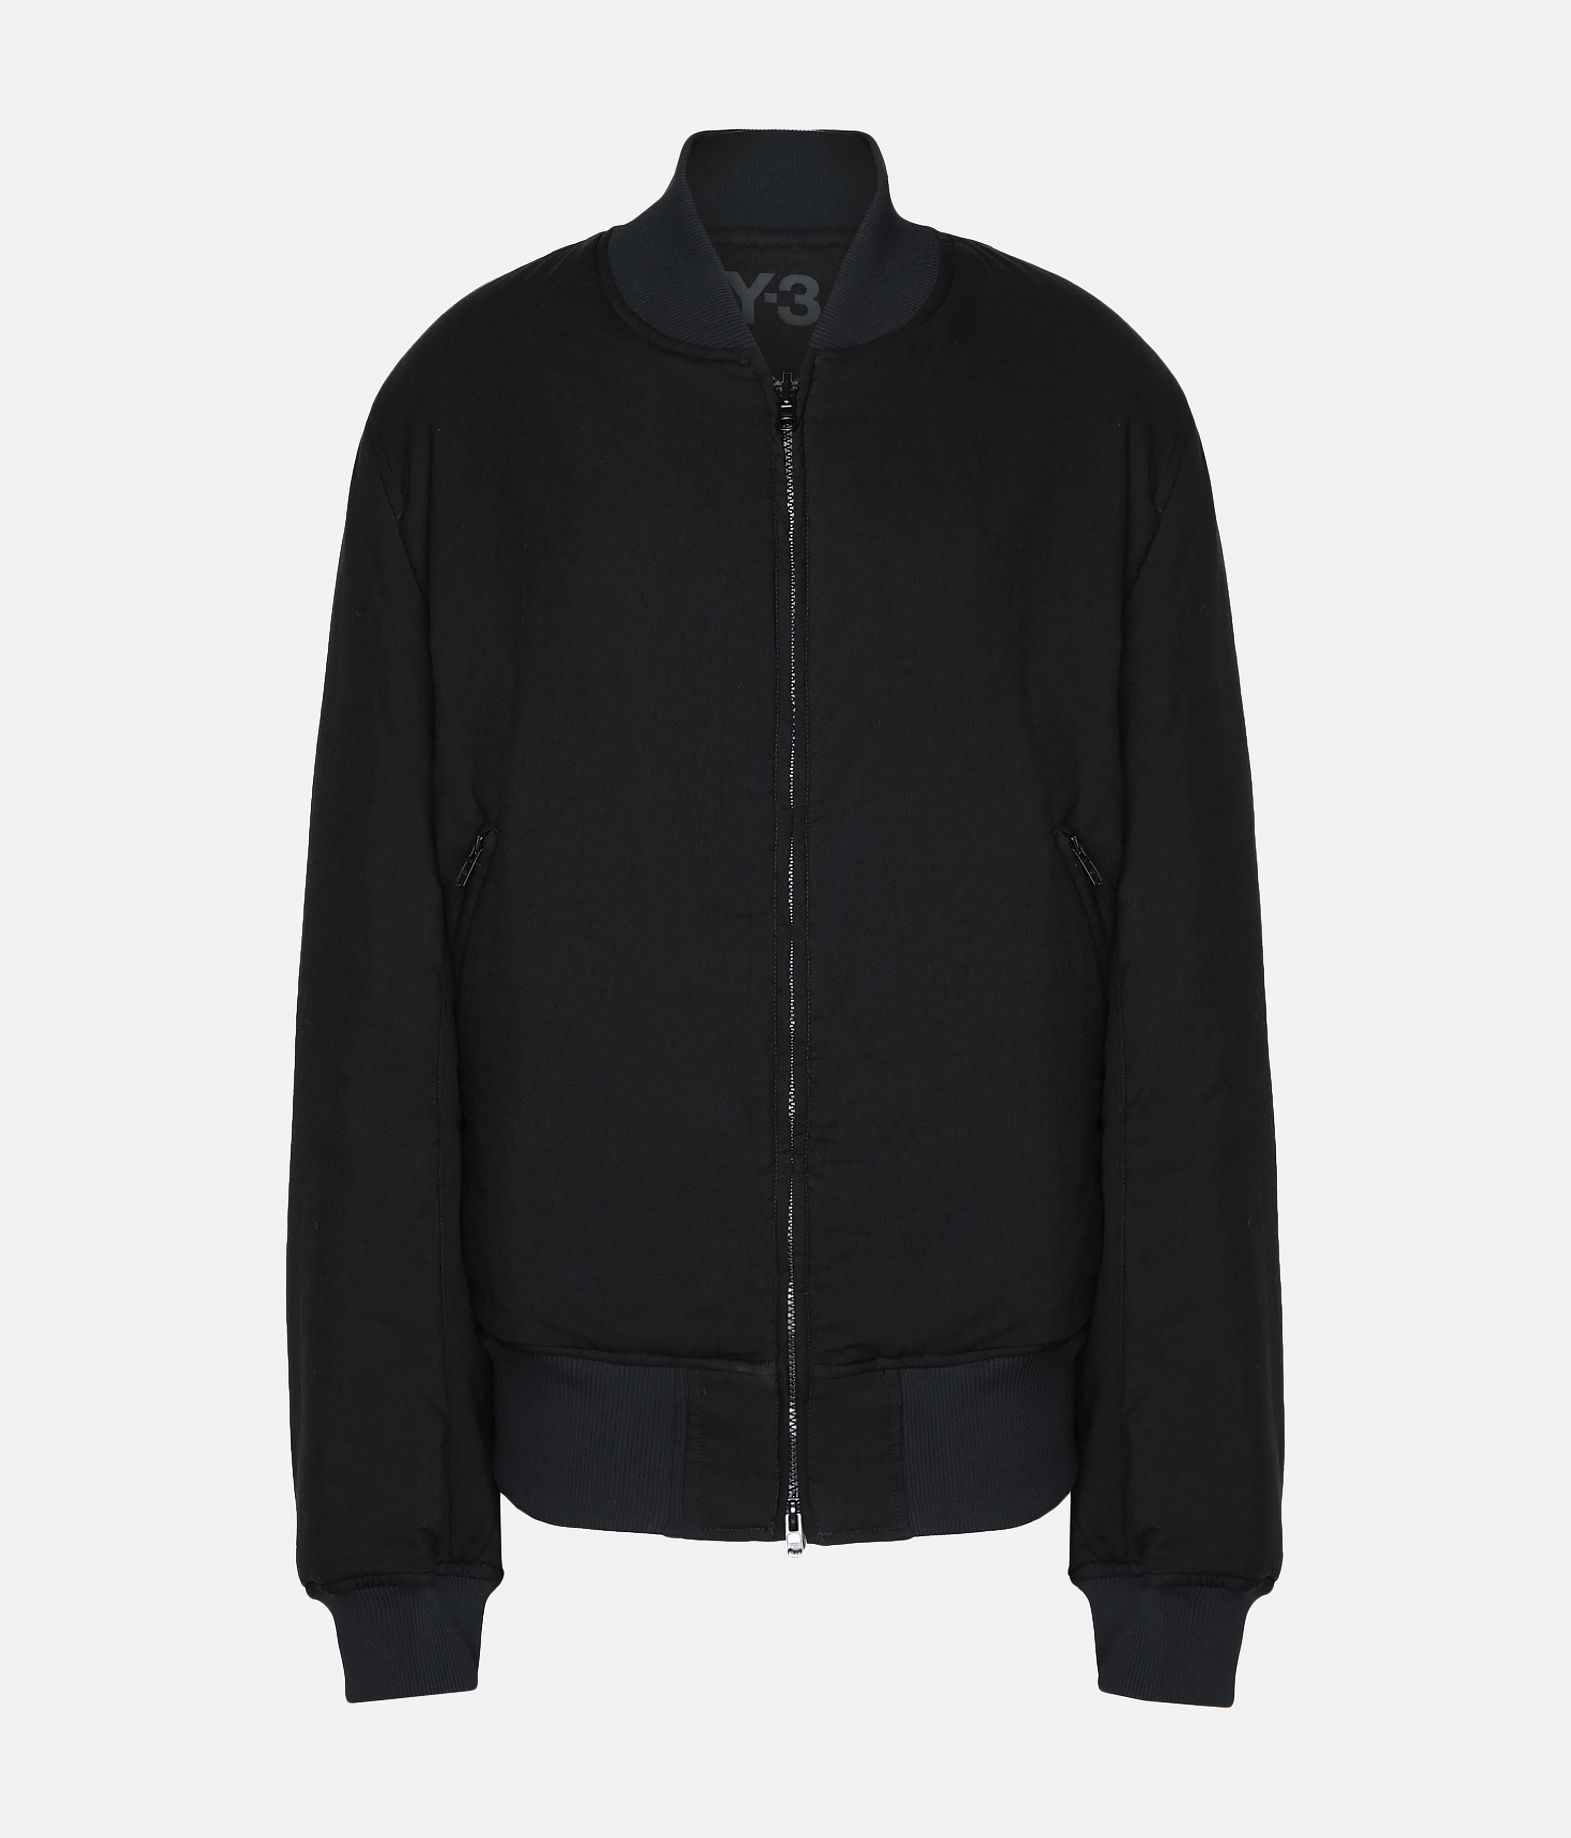 Y-3 Y-3 Reversible Bomber Jacket  Jacket Woman f